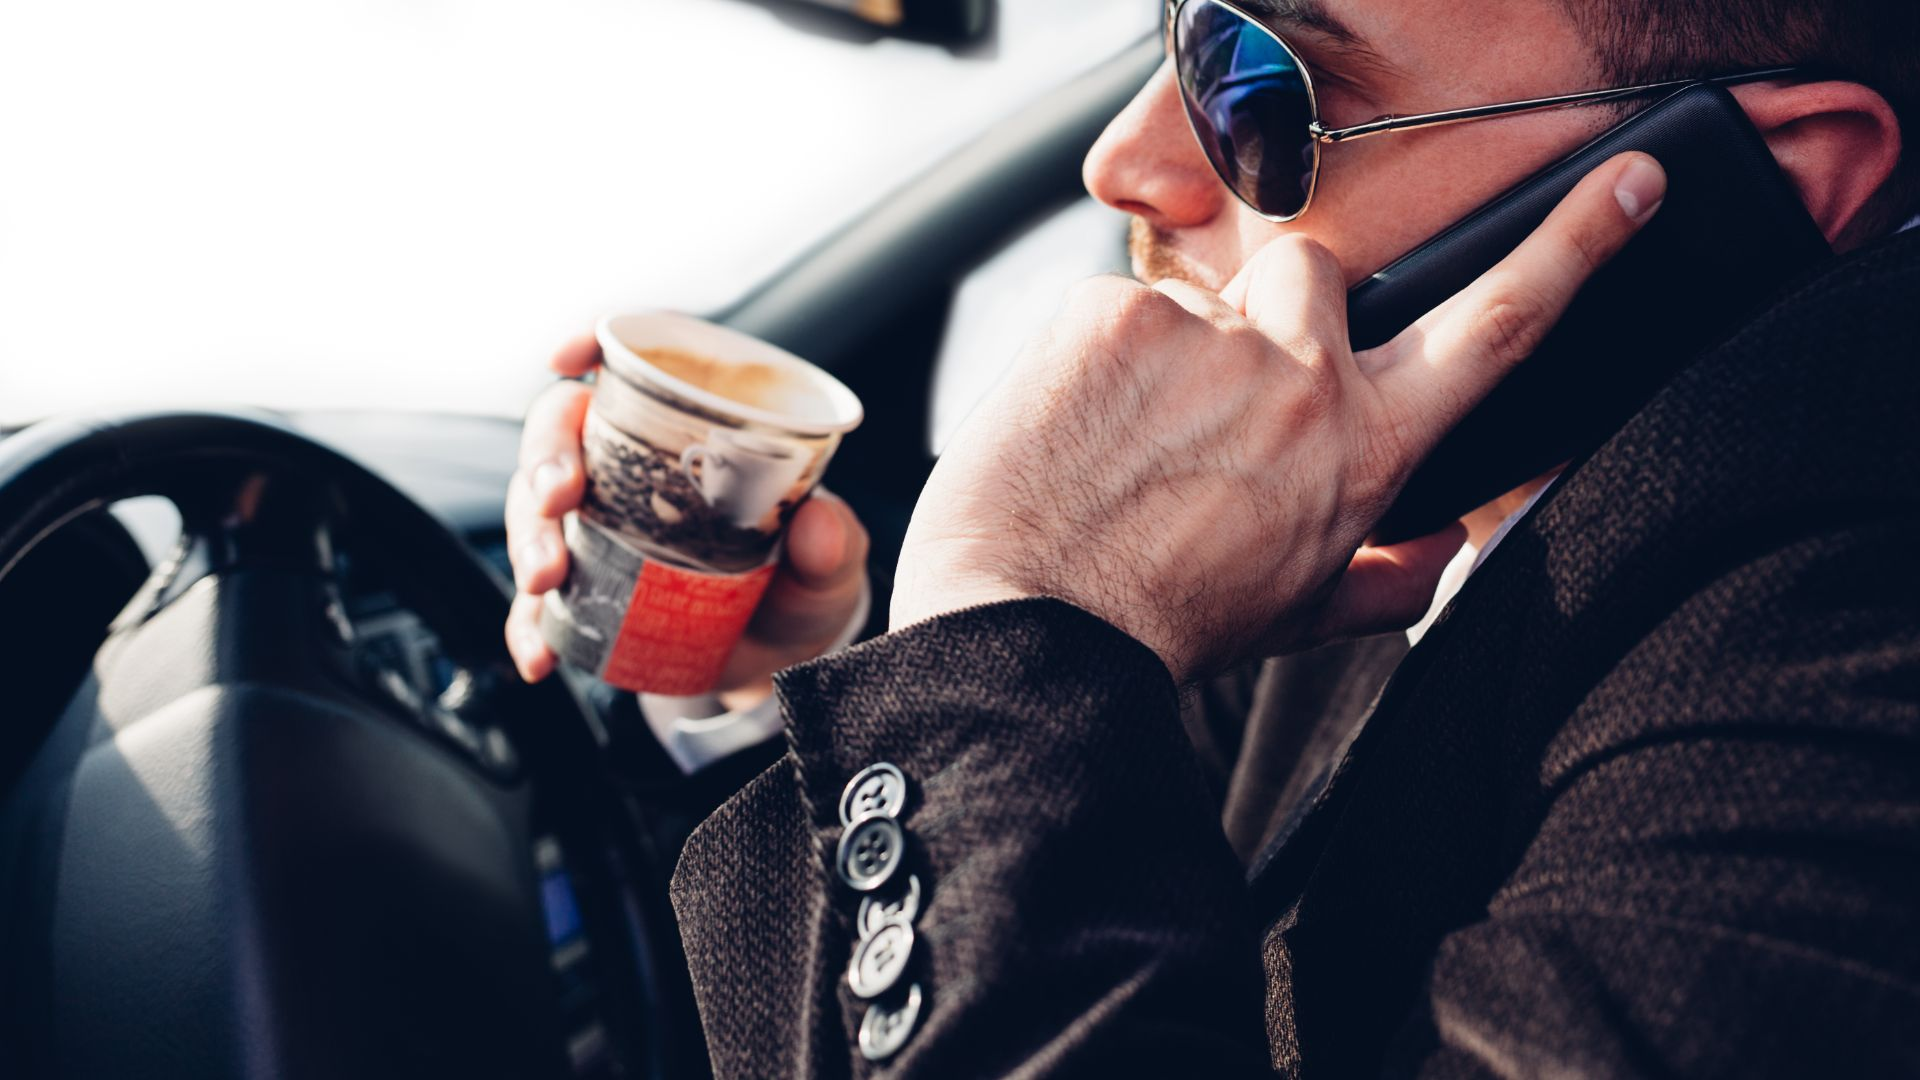 Distractions behind the wheel